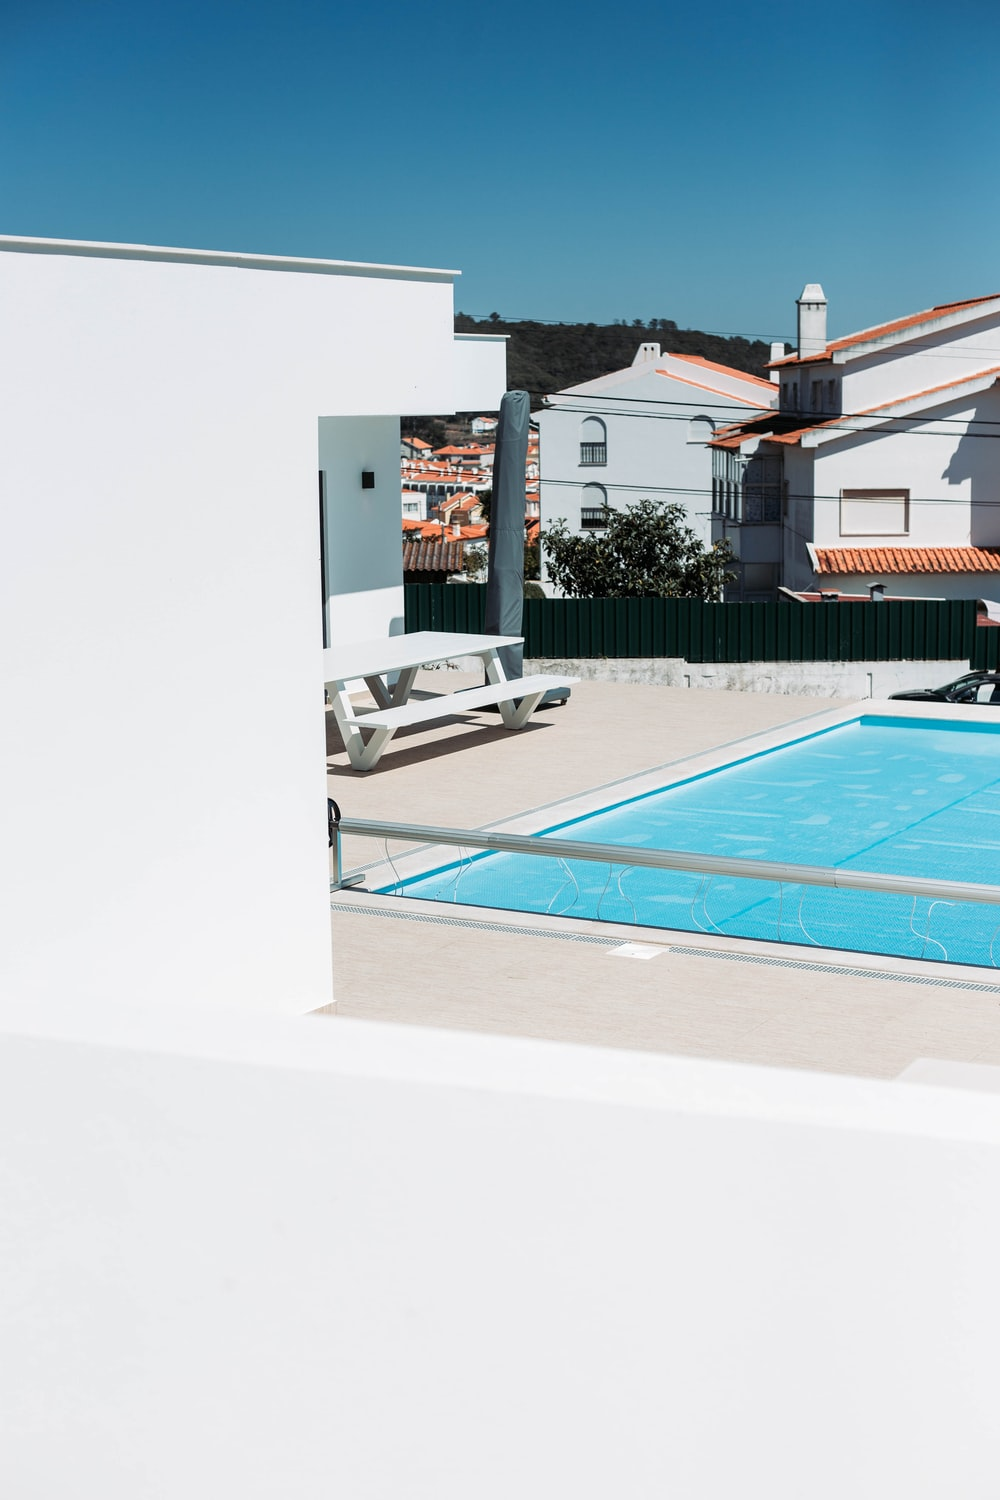 swimming pool beside picnic table during daytime